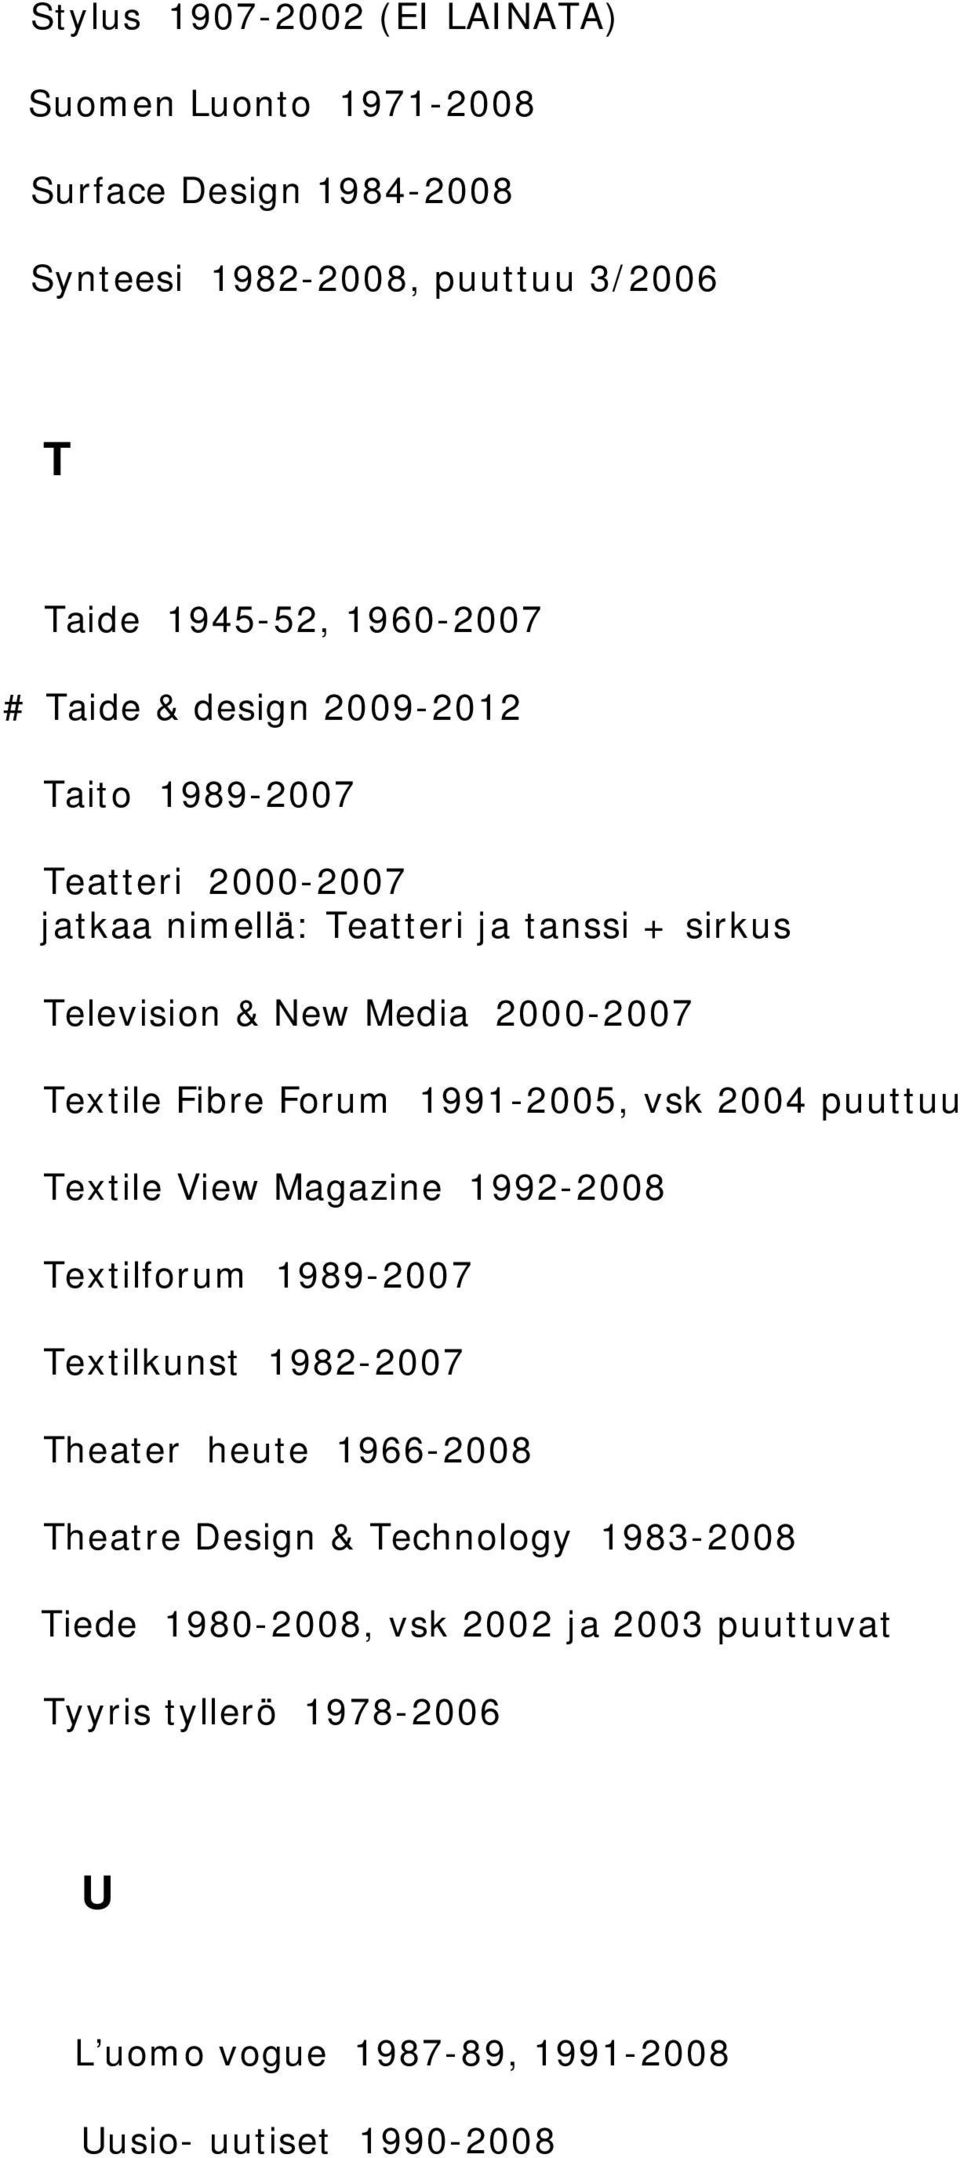 Forum 1991-2005, vsk 2004 puuttuu Textile View Magazine 1992-2008 Textilforum 1989-2007 Textilkunst 1982-2007 Theater heute 1966-2008 Theatre Design